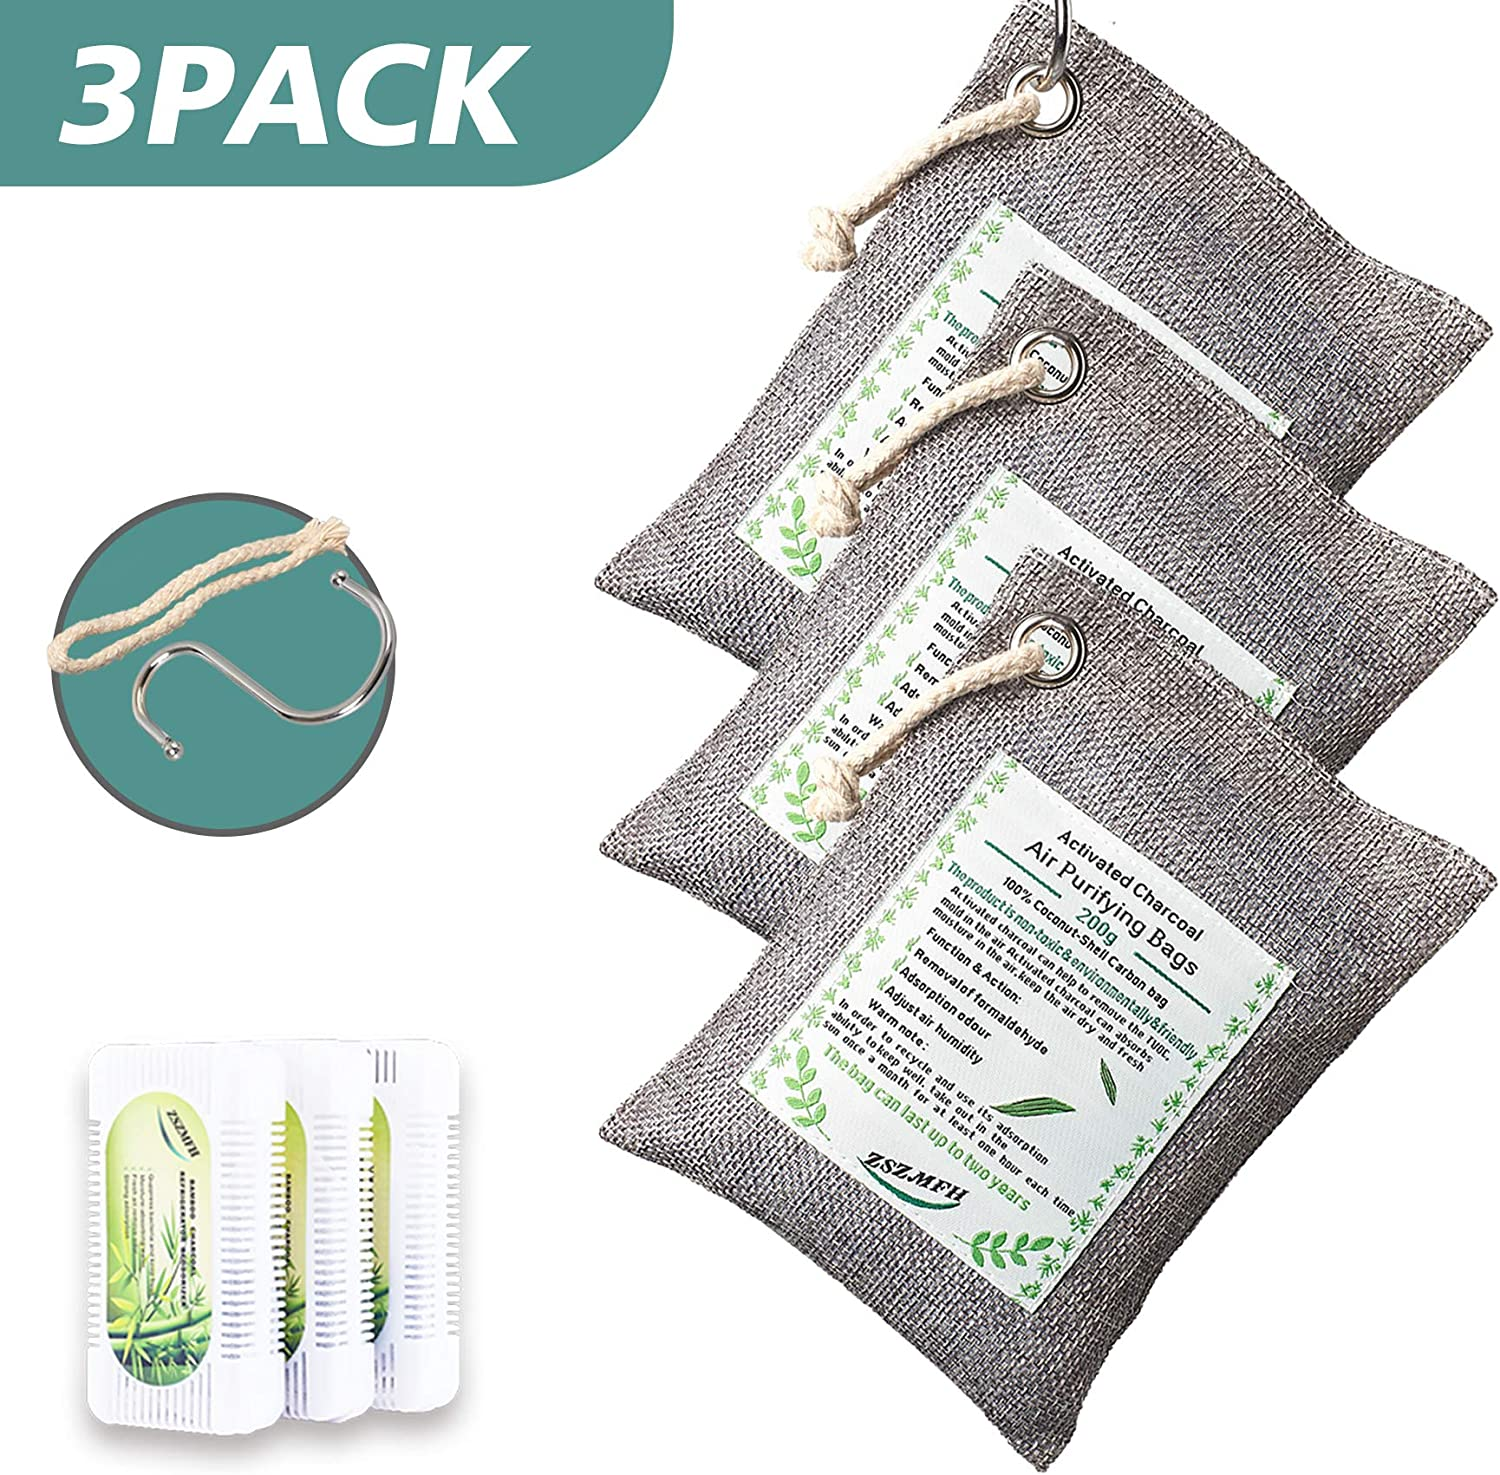 ZSZMFH 3 Pack Activated Bamboo Charcoal Air Purifying Bags, Odor Absorber Bags, Odor Eliminator for Home, Closet, Car (220g/pack) -Includes 3 Pack Refrigerator Deodorizers (50g/Pack)…